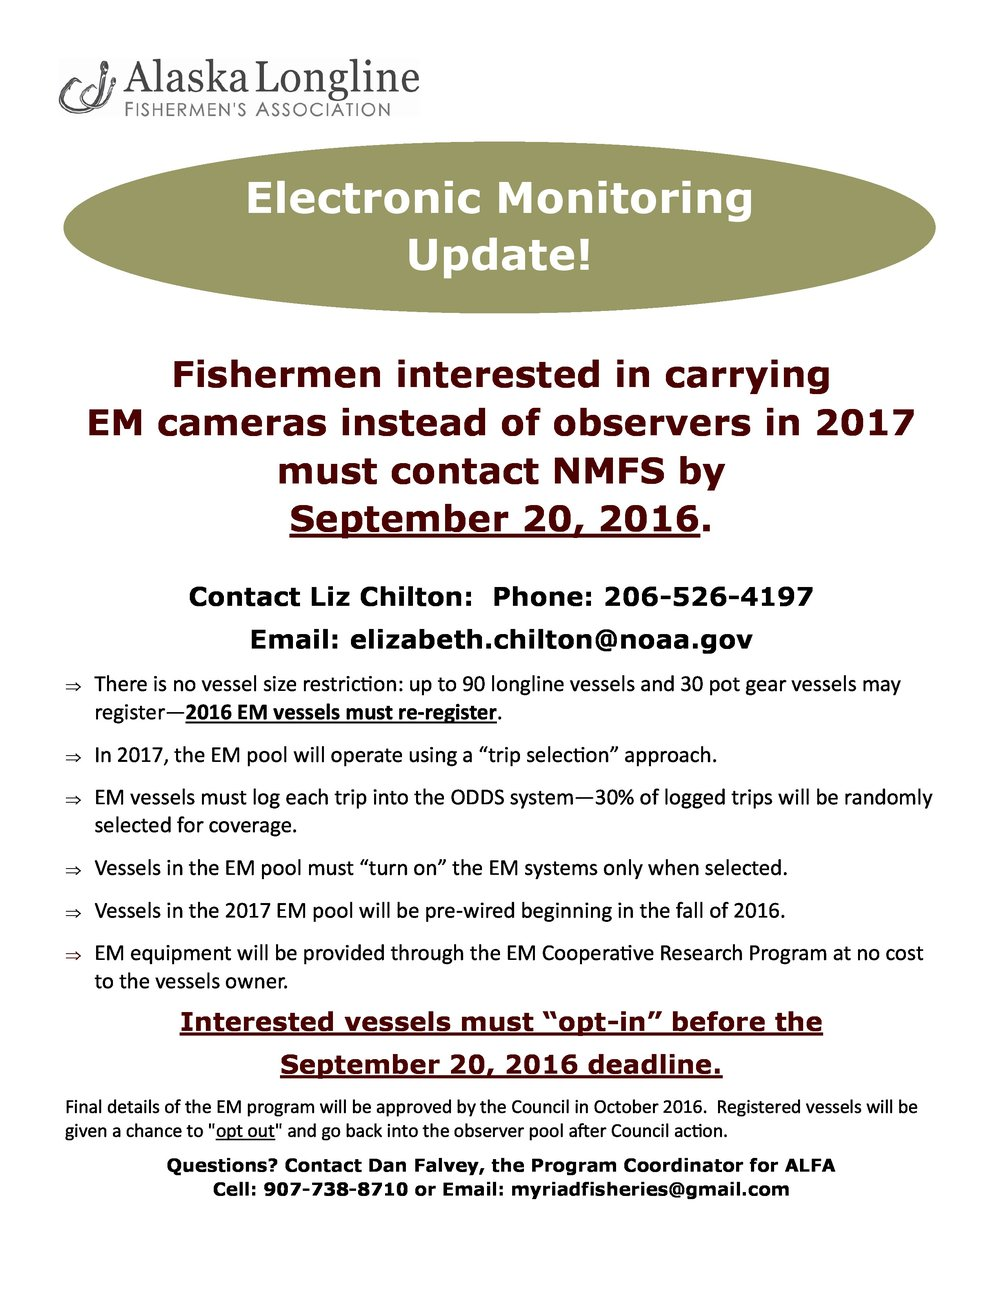 Electronic Monitoring Update